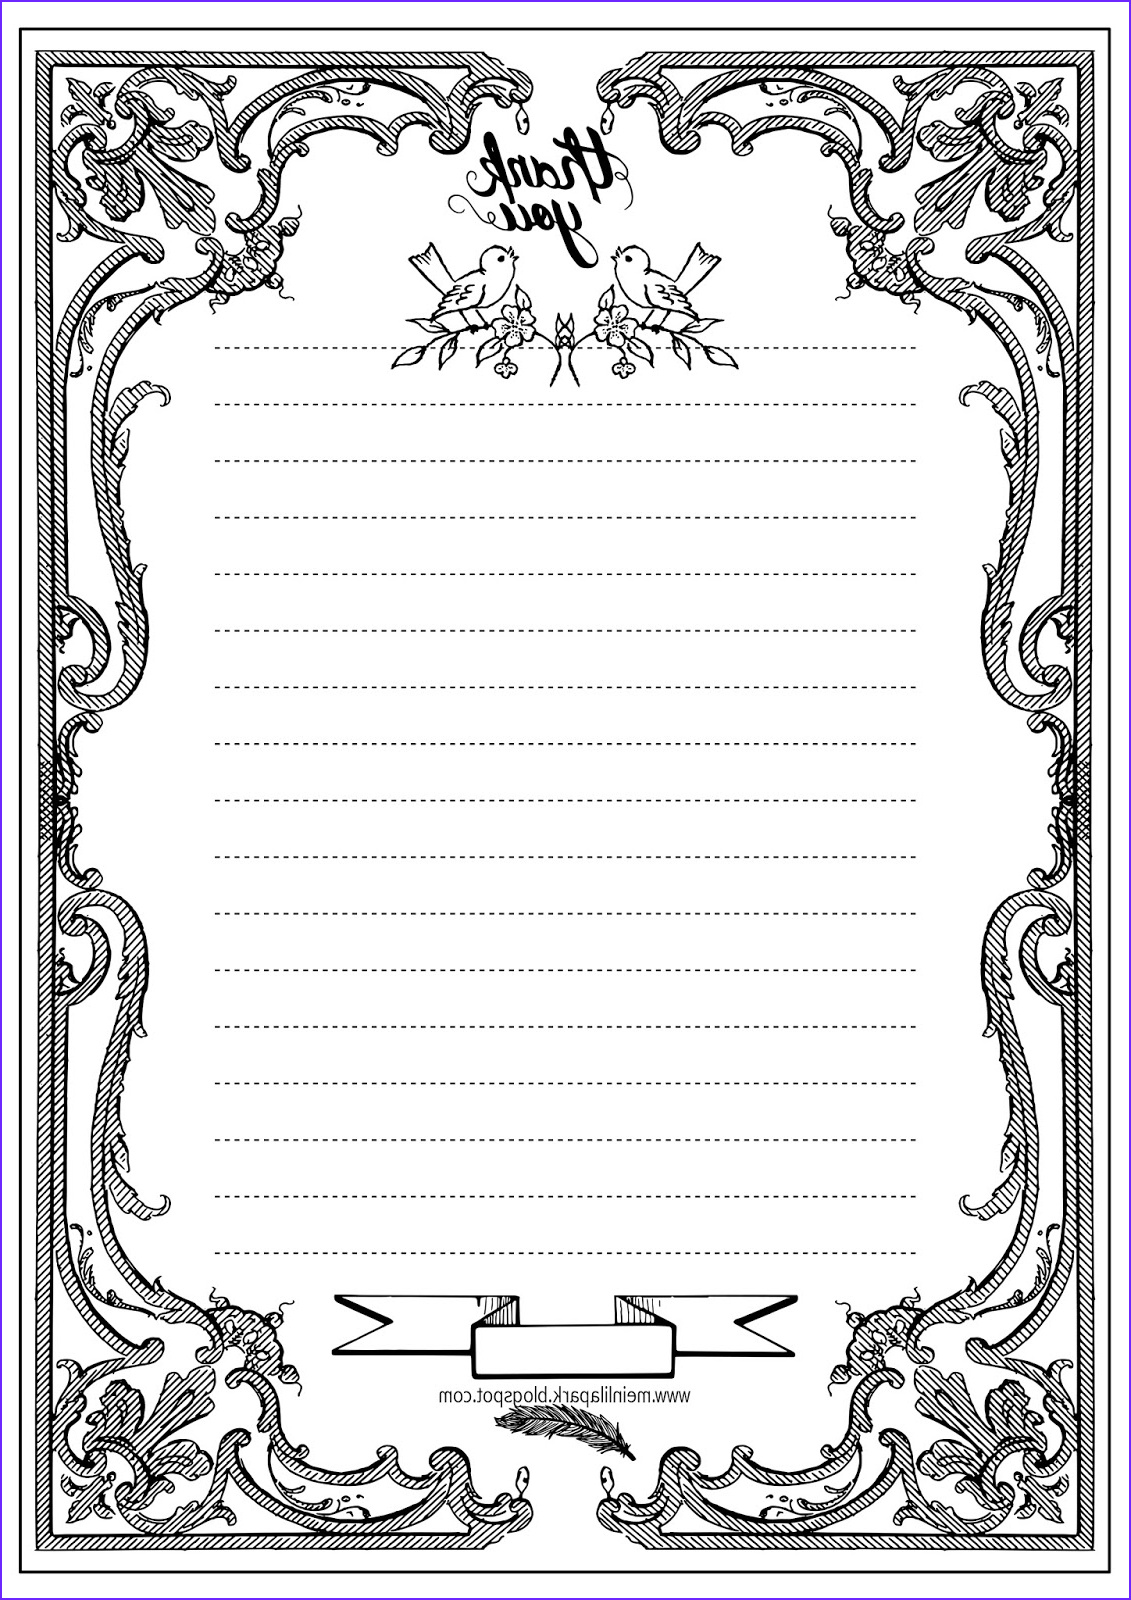 Coloring Paper to Print Awesome Stock Free Printable Thank You Writing Paper Ausruckbares